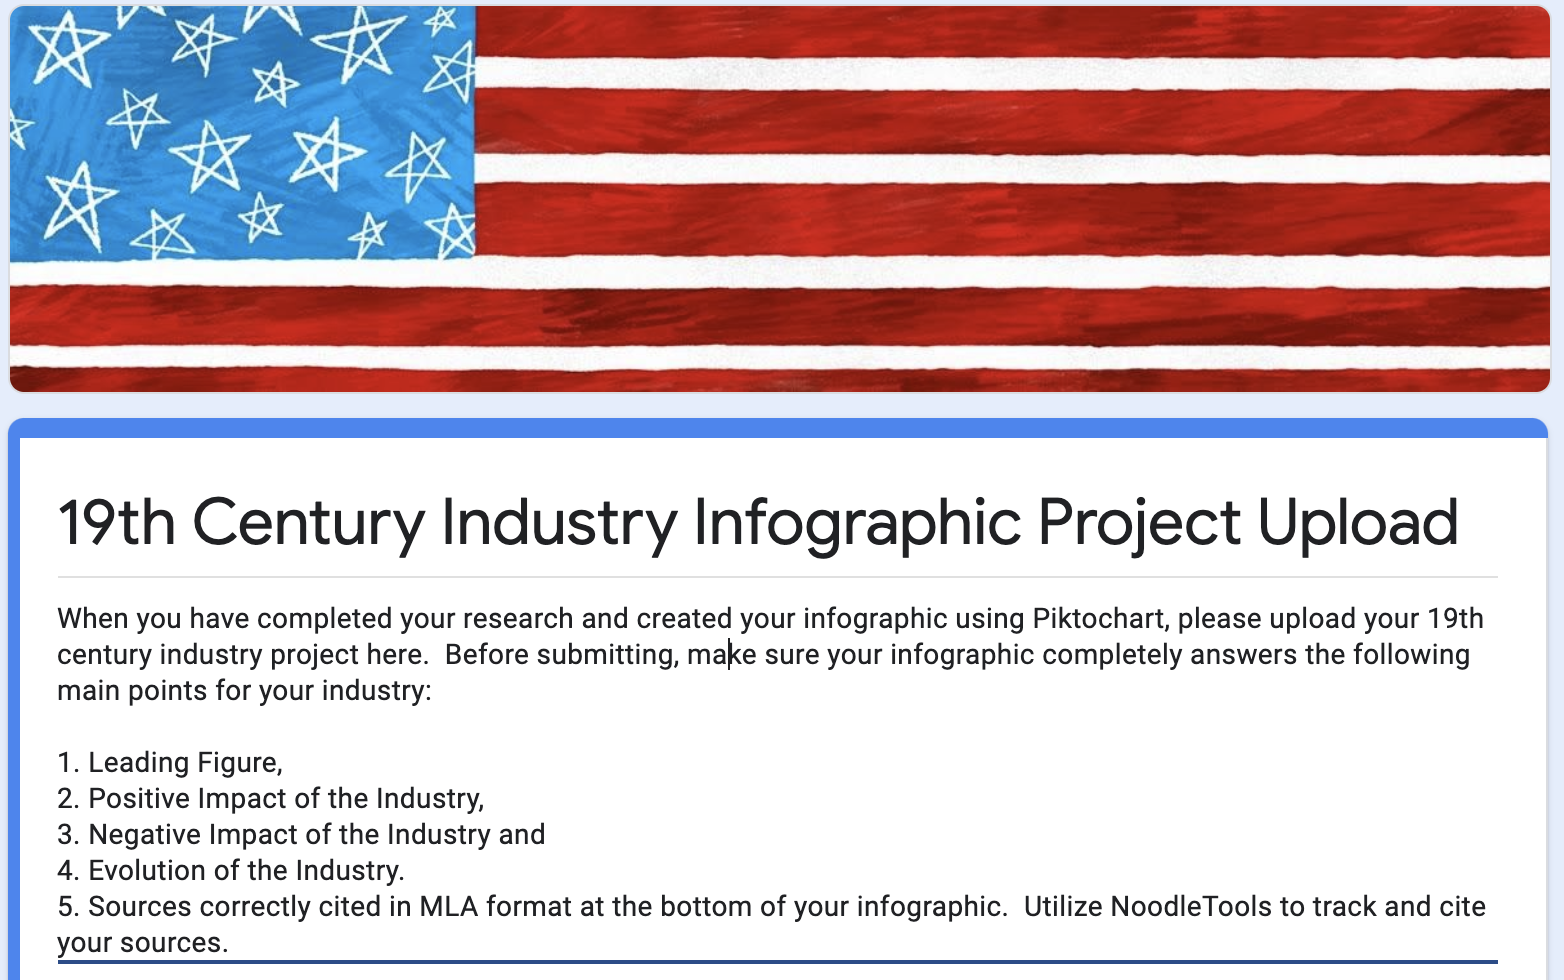 Industry Infographic Upload